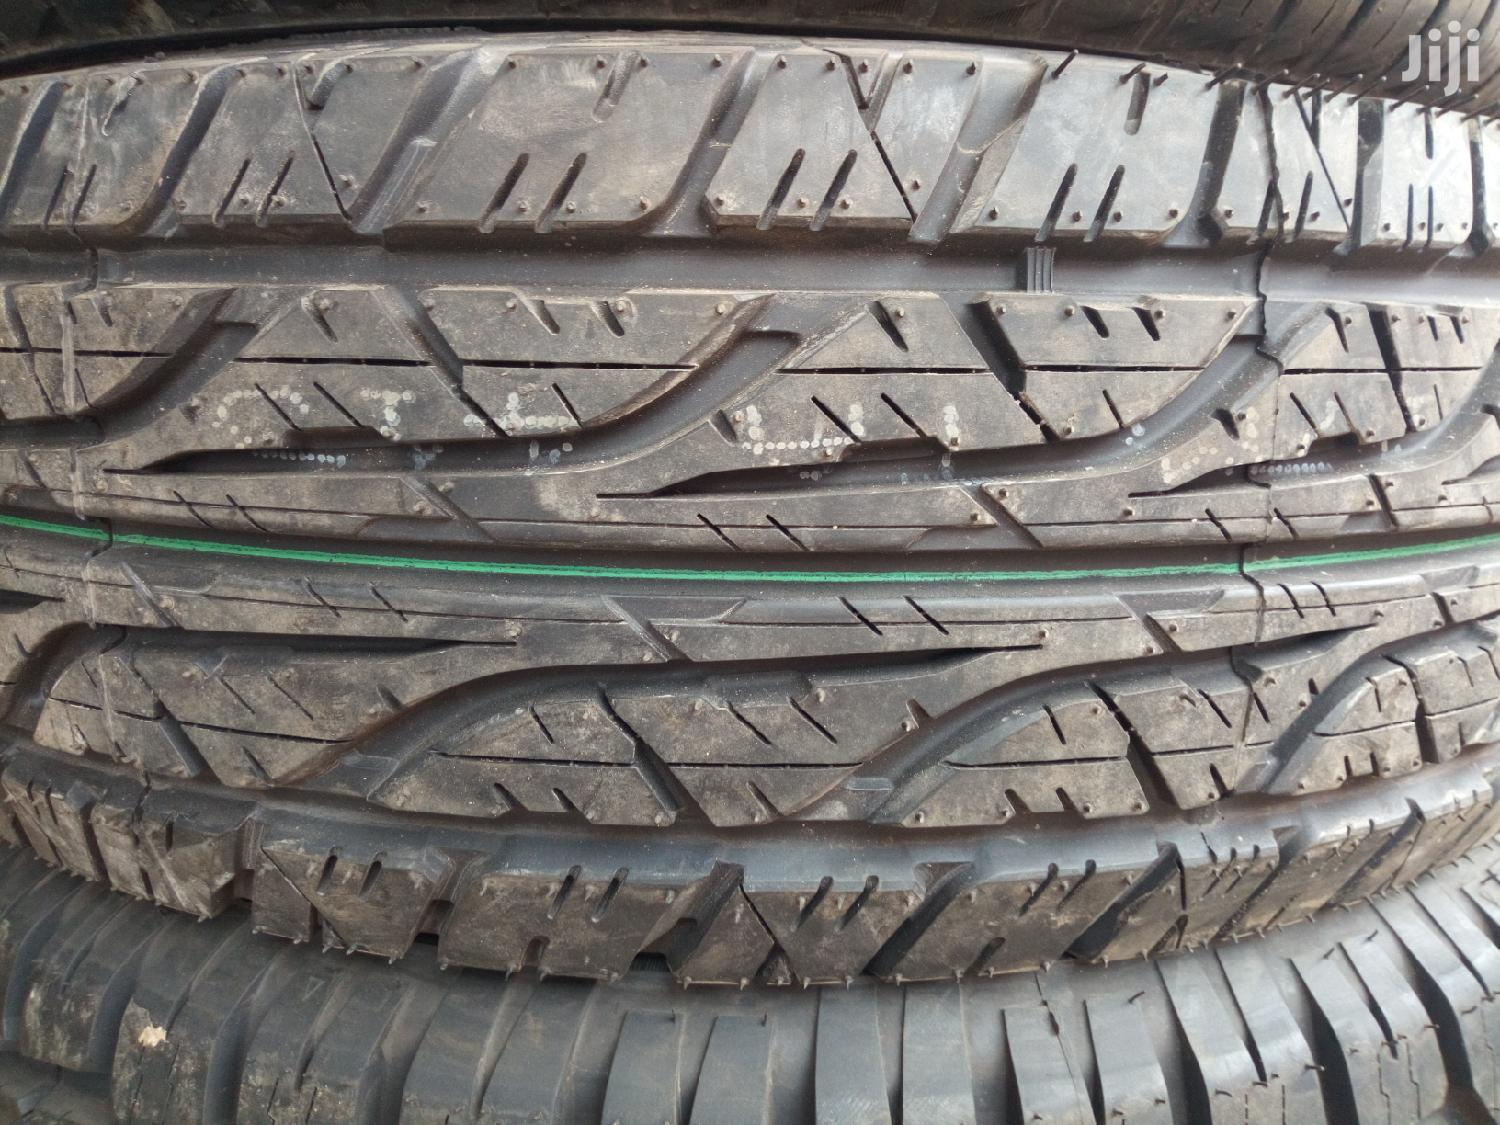 265/70 R16 Dunlop AT3 Made In Thailand